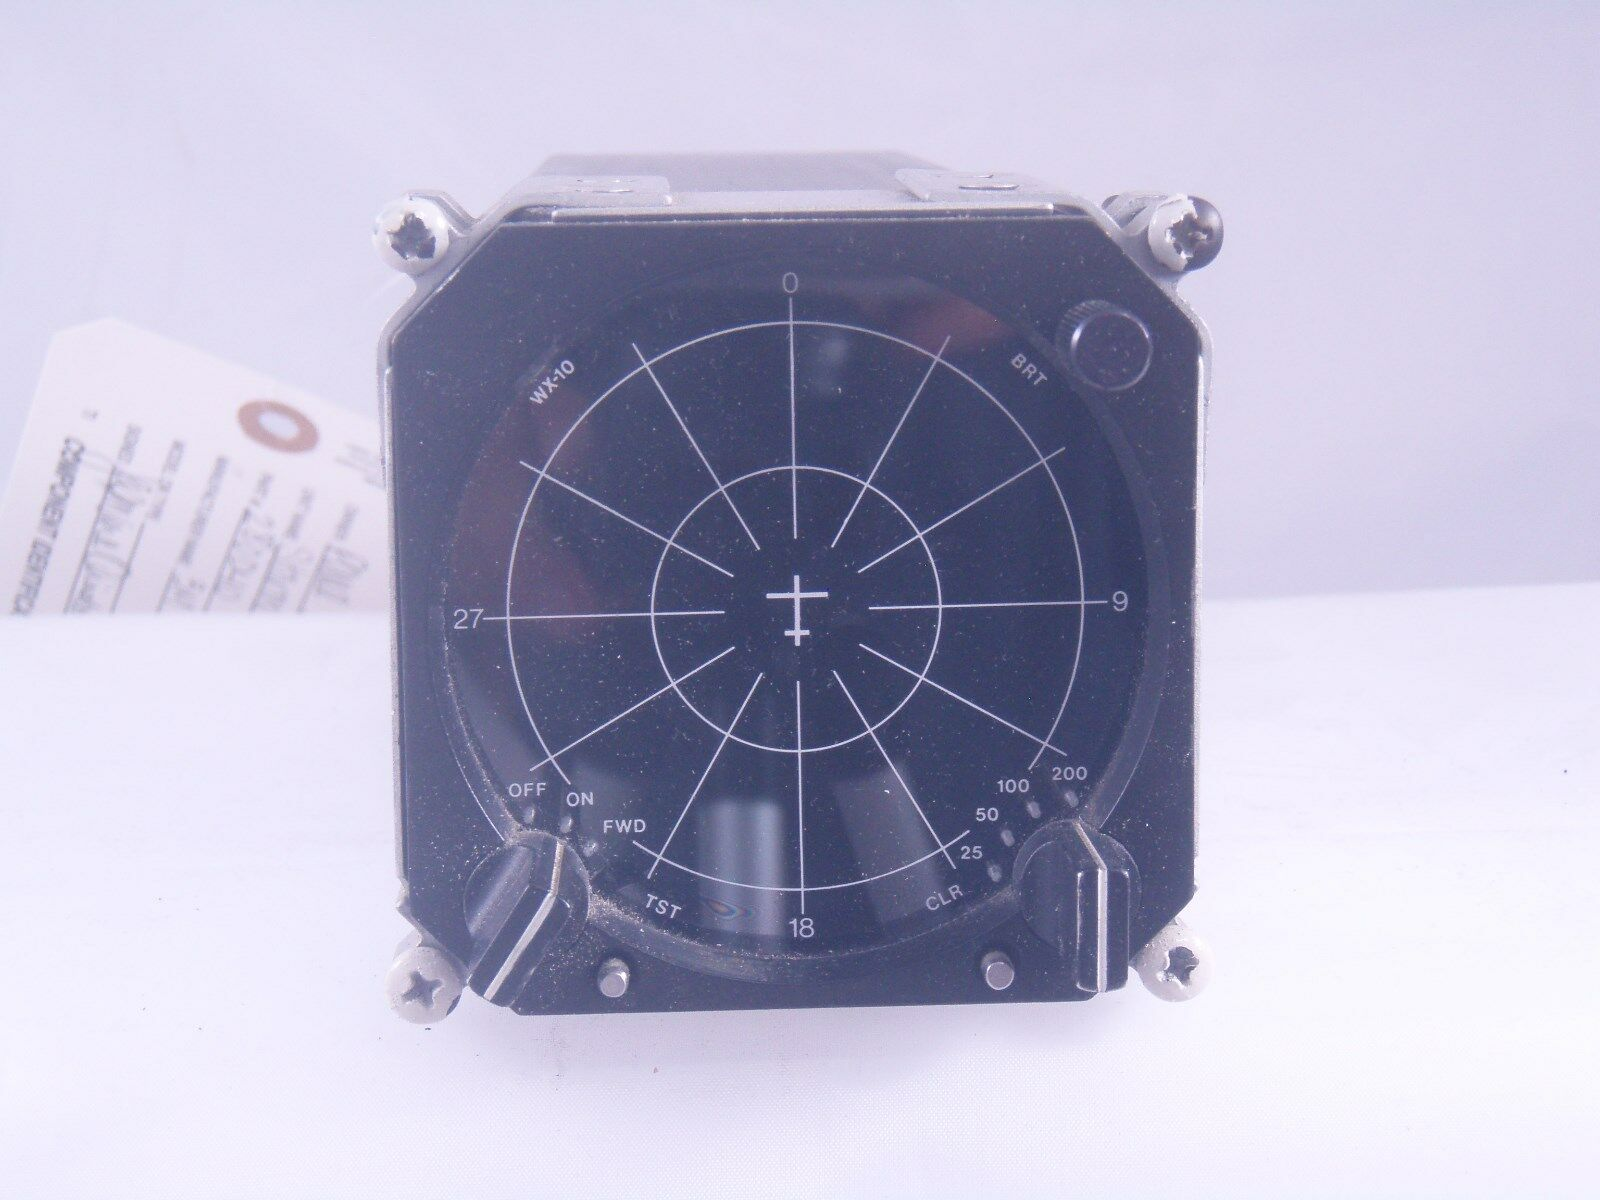 3M WX-10 Stormscope Processor 380D03 with Display PN 280D40 and Antenna